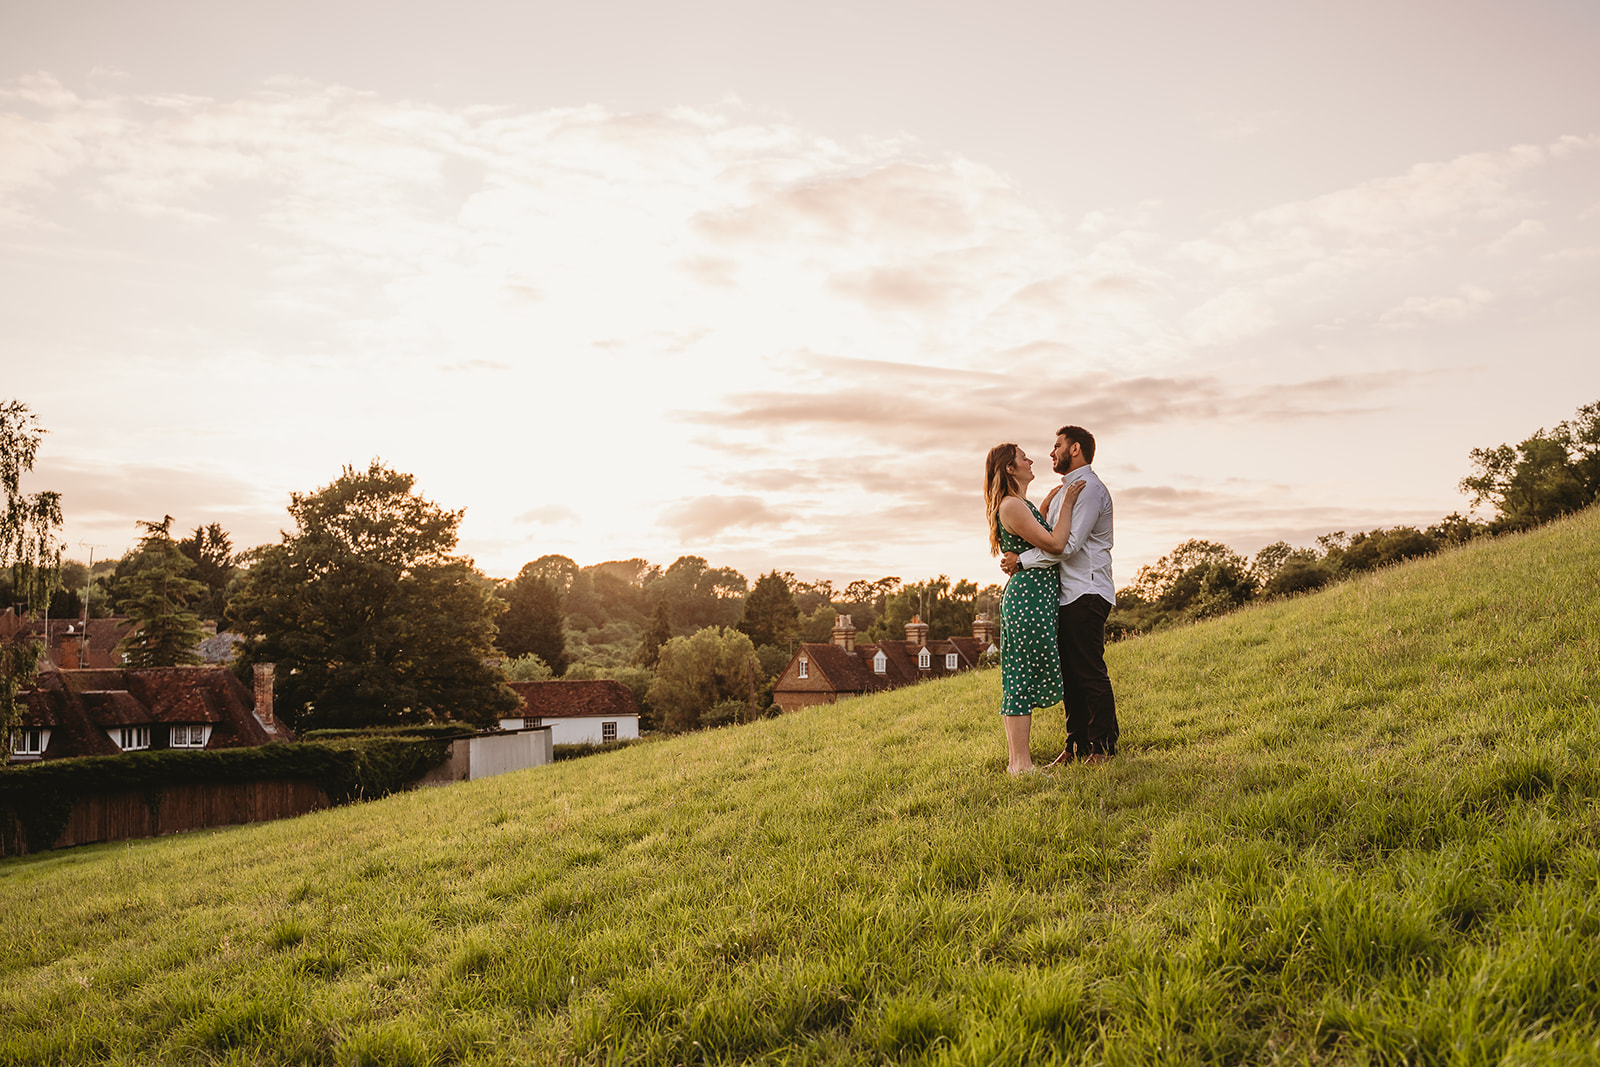 Couple photoshoot during golden hour, romantic photography in Kent countryside